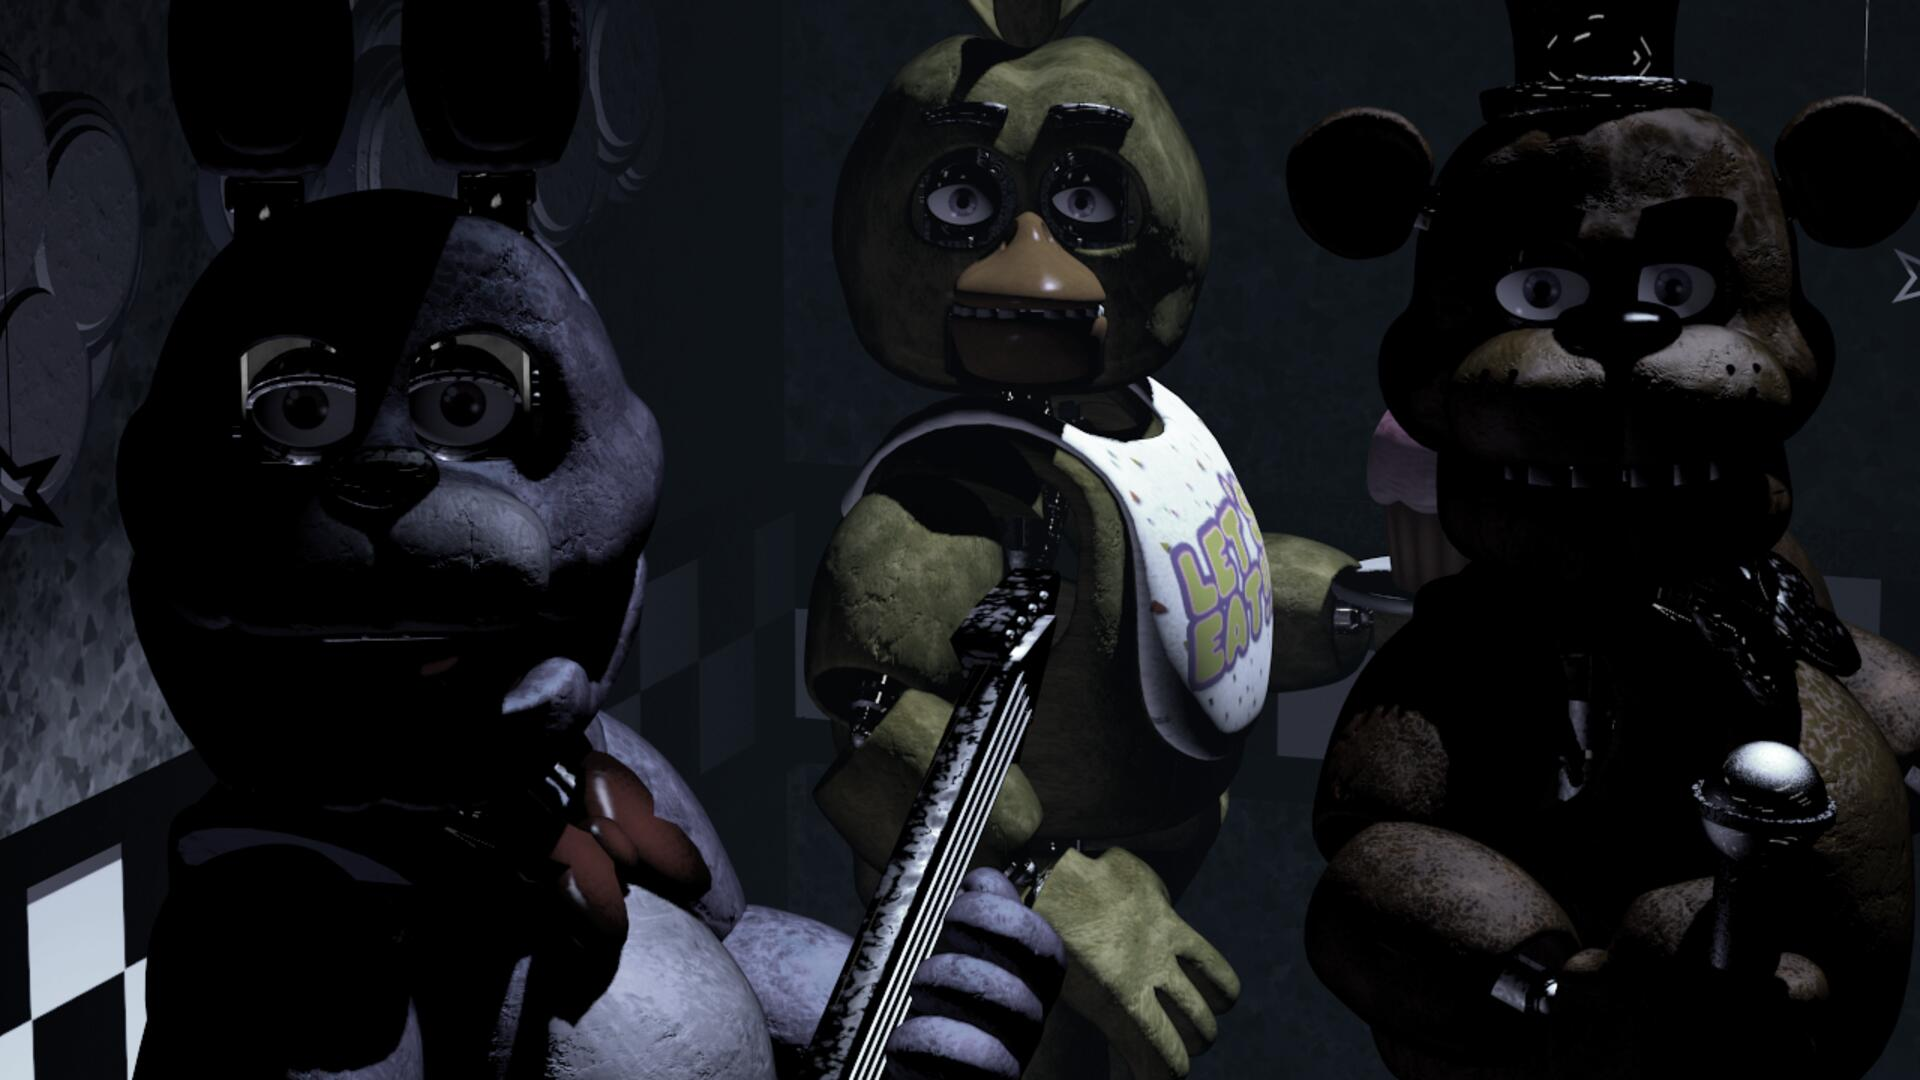 How to Improve the Five Nights at Freddy's Games   USgamer